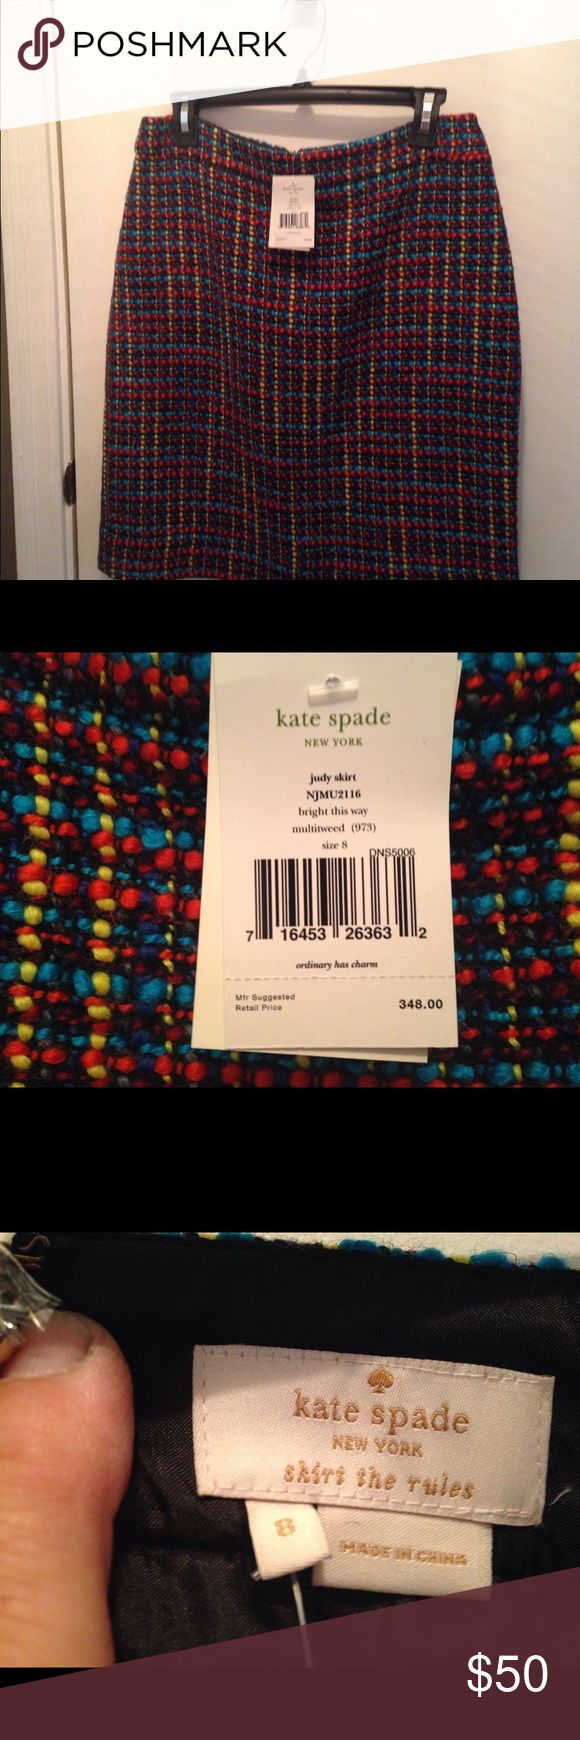 NWT - Kate Spade tweed skirt New with tags genuine Kate Spade knobby tweed skirt with kick pleat.  Acrylic wool blend with lining and exposed back zip.  Original price  suggested retail price $348 kate spade Skirts Midi